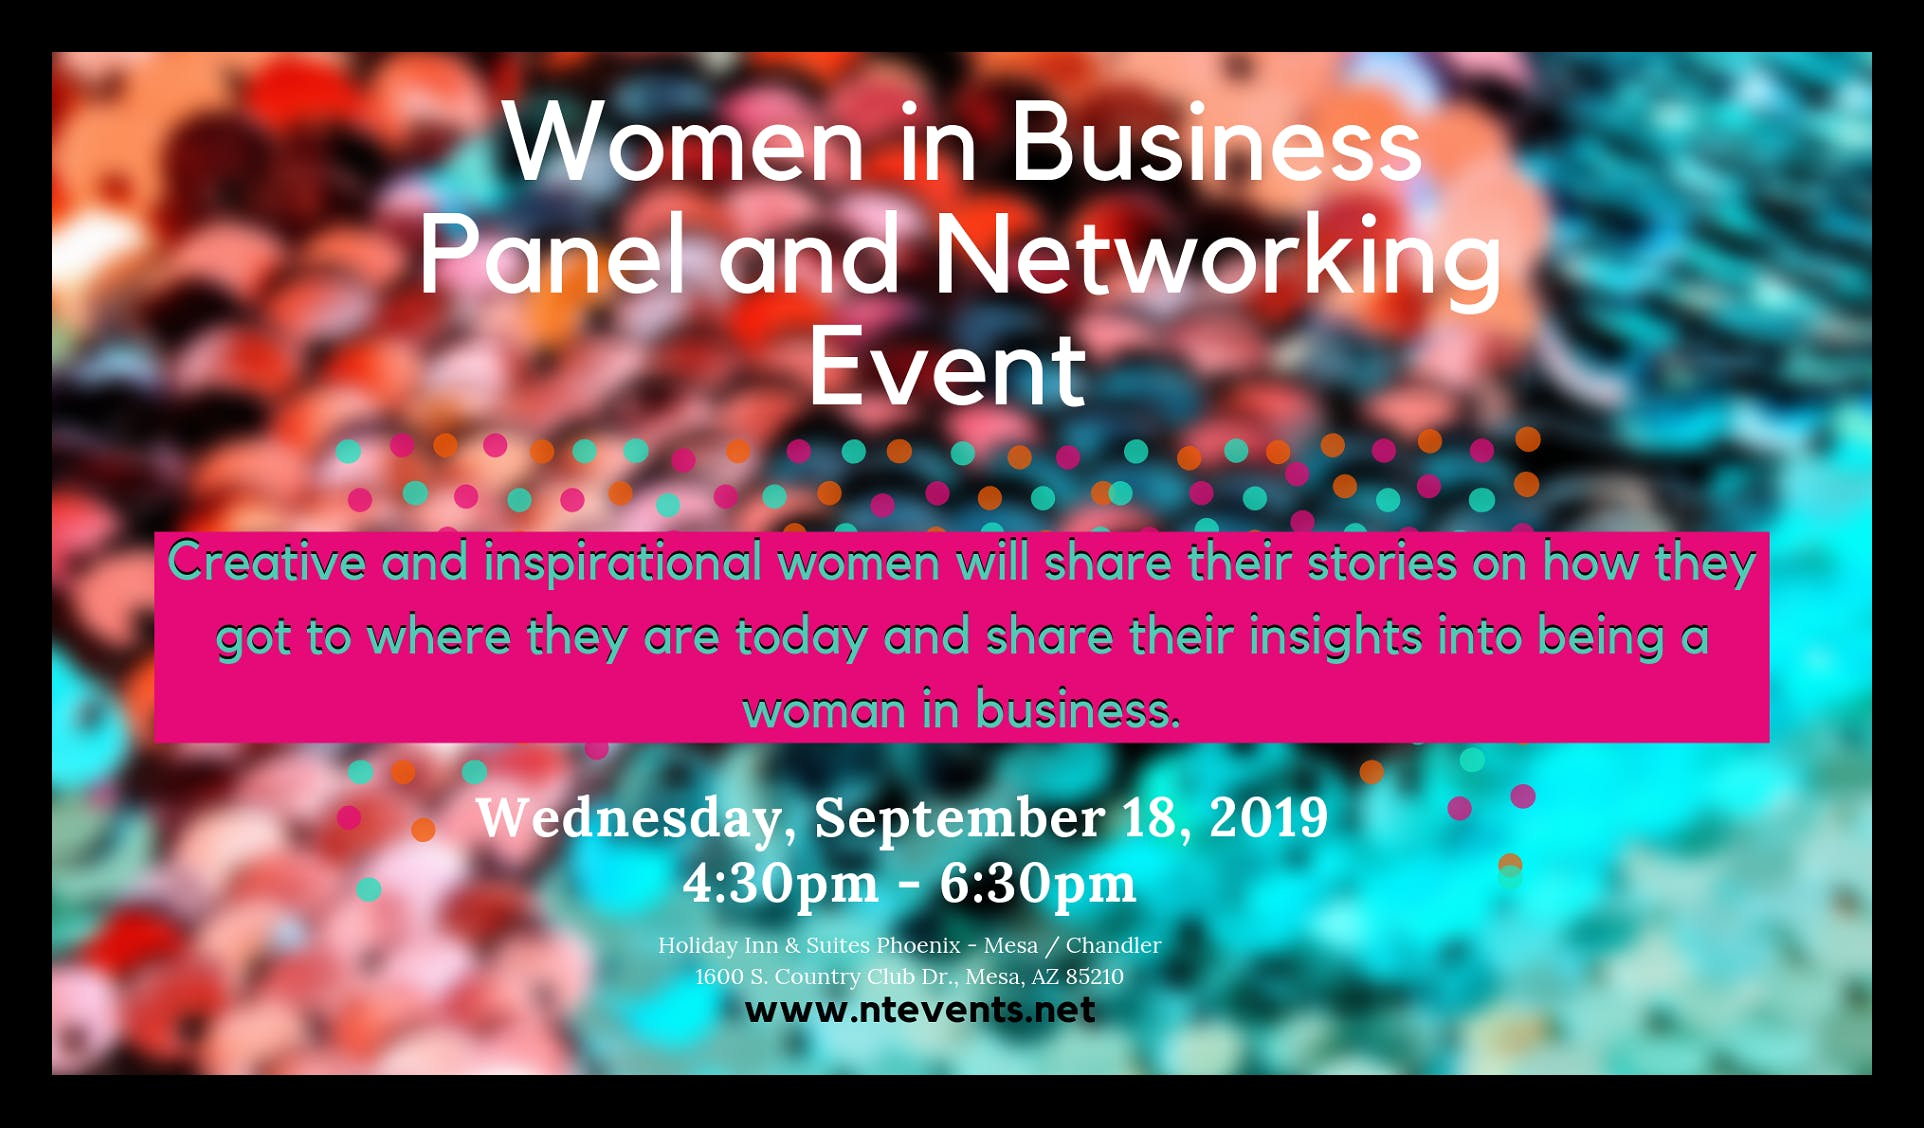 Women in Business Panel and Networking Event